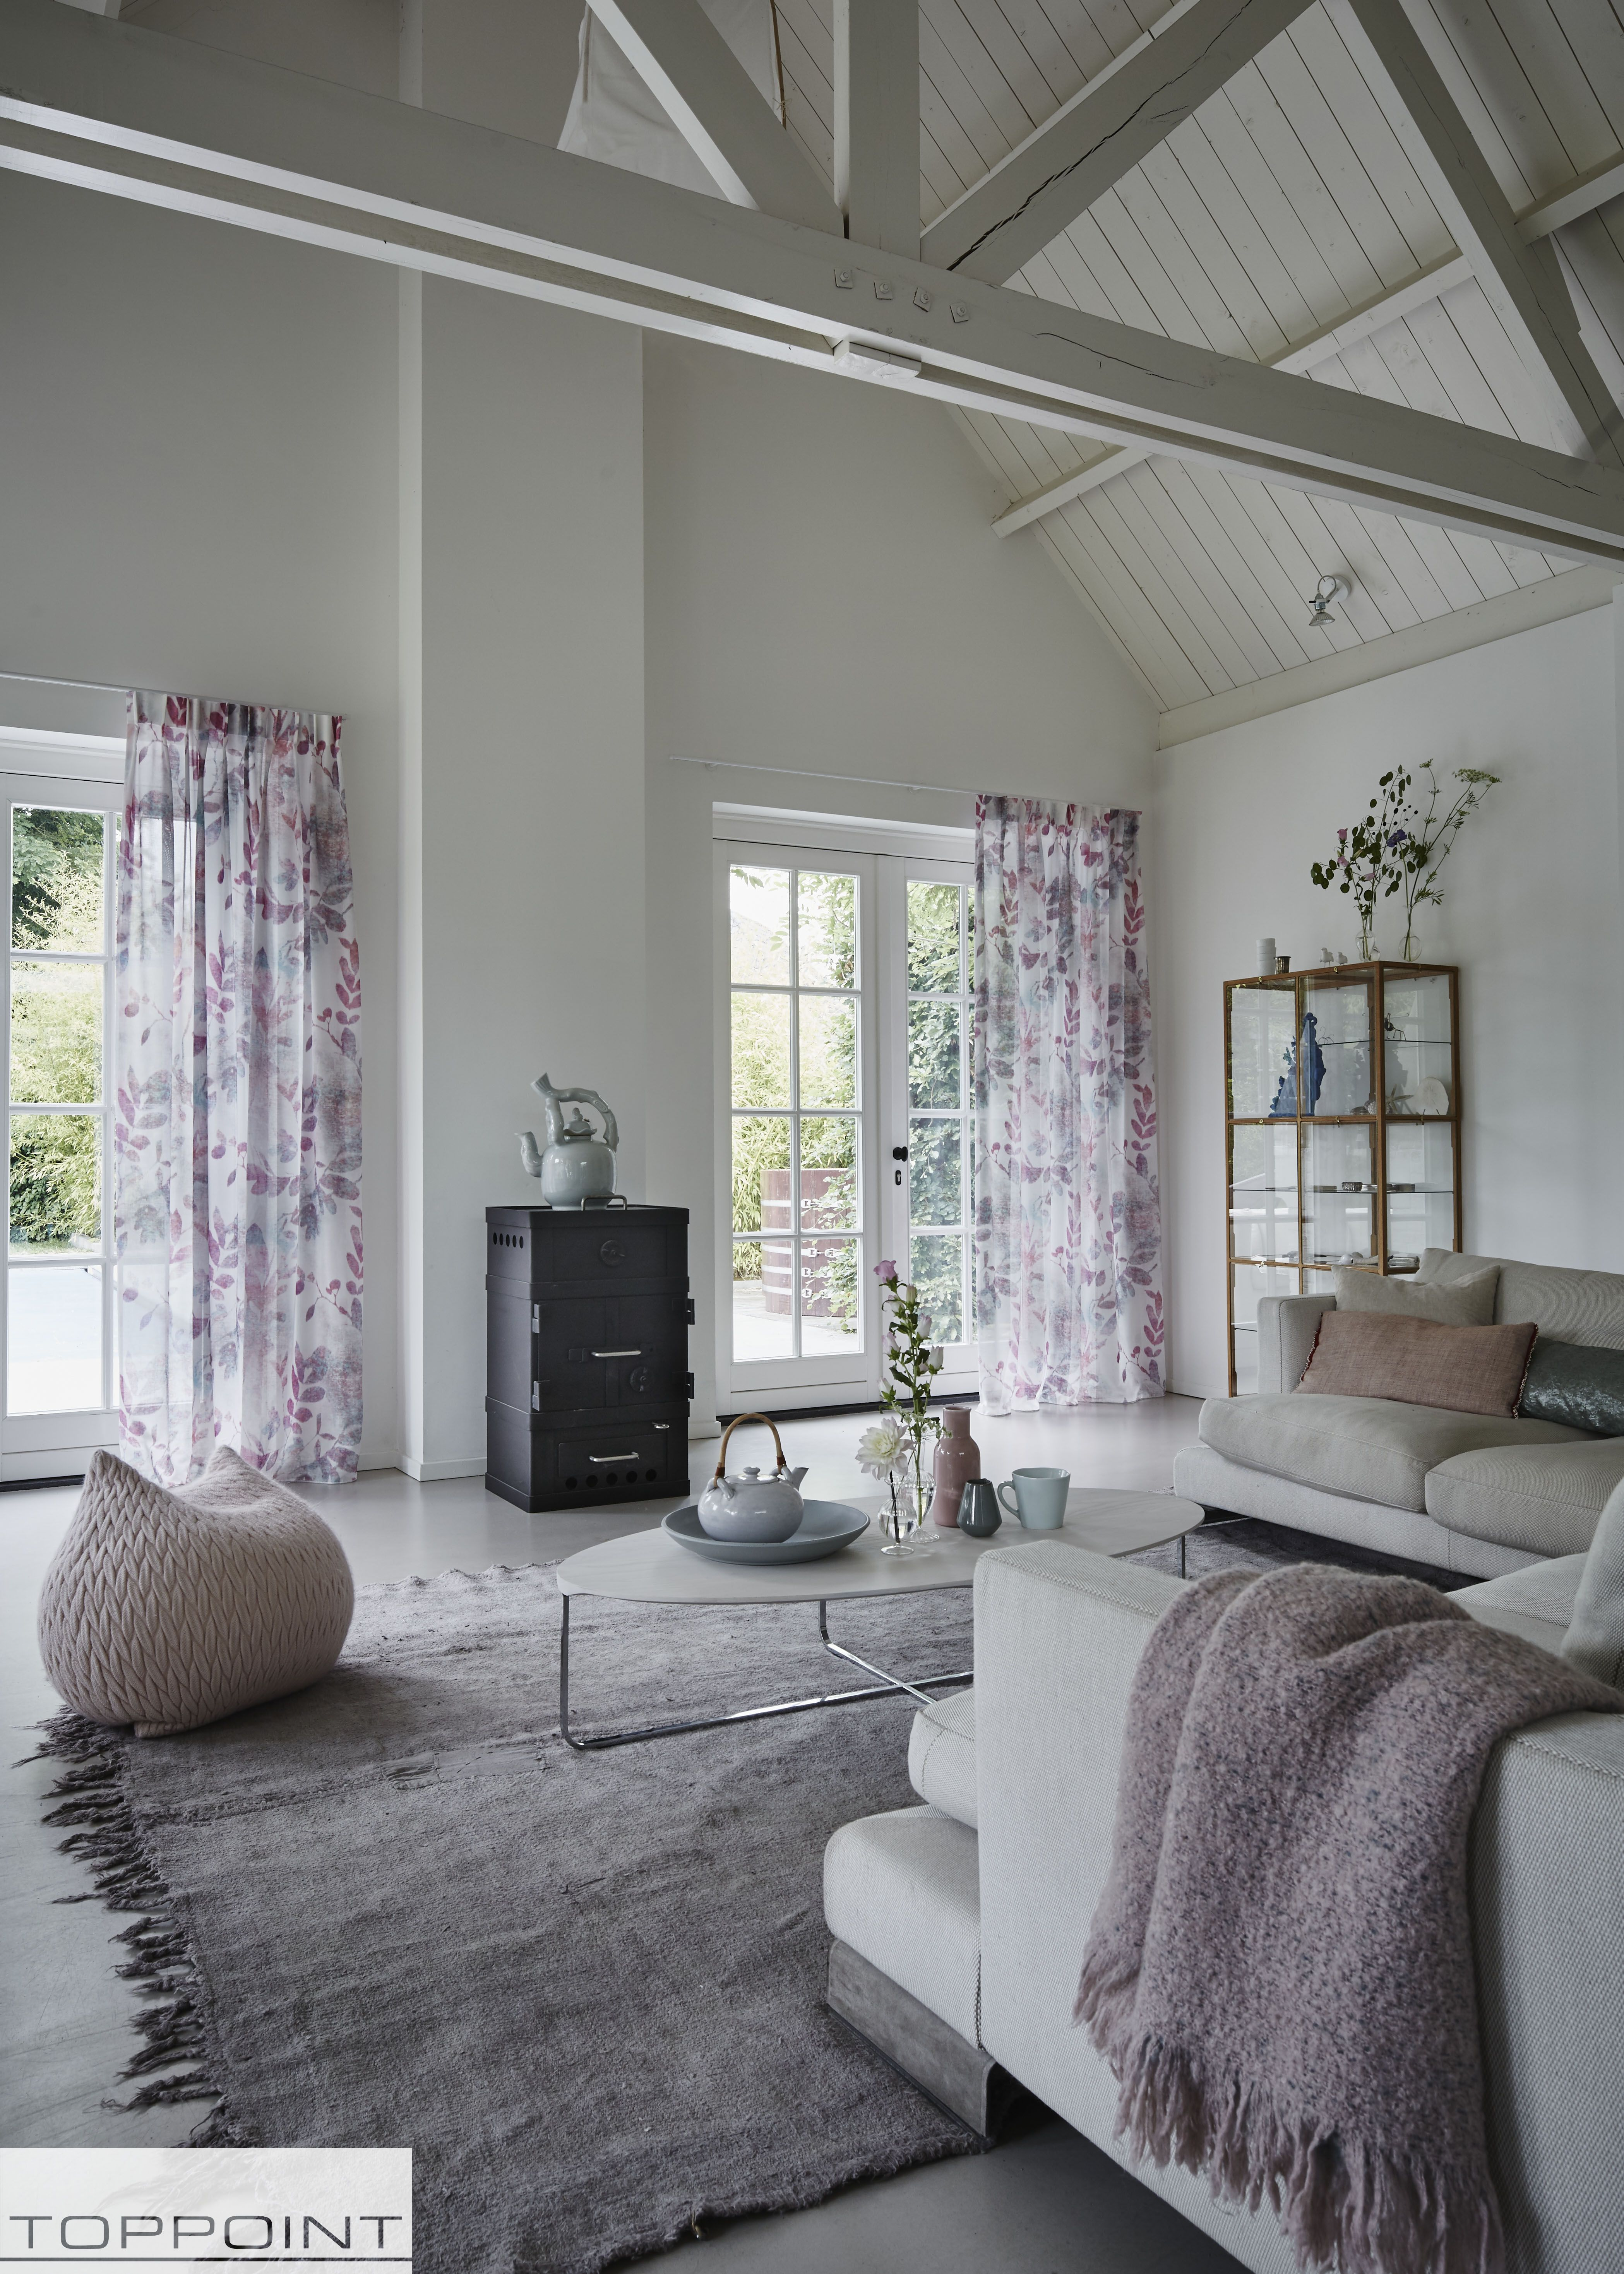 Curtains | by Toppoint www.kokwonenenlifestyle.nl